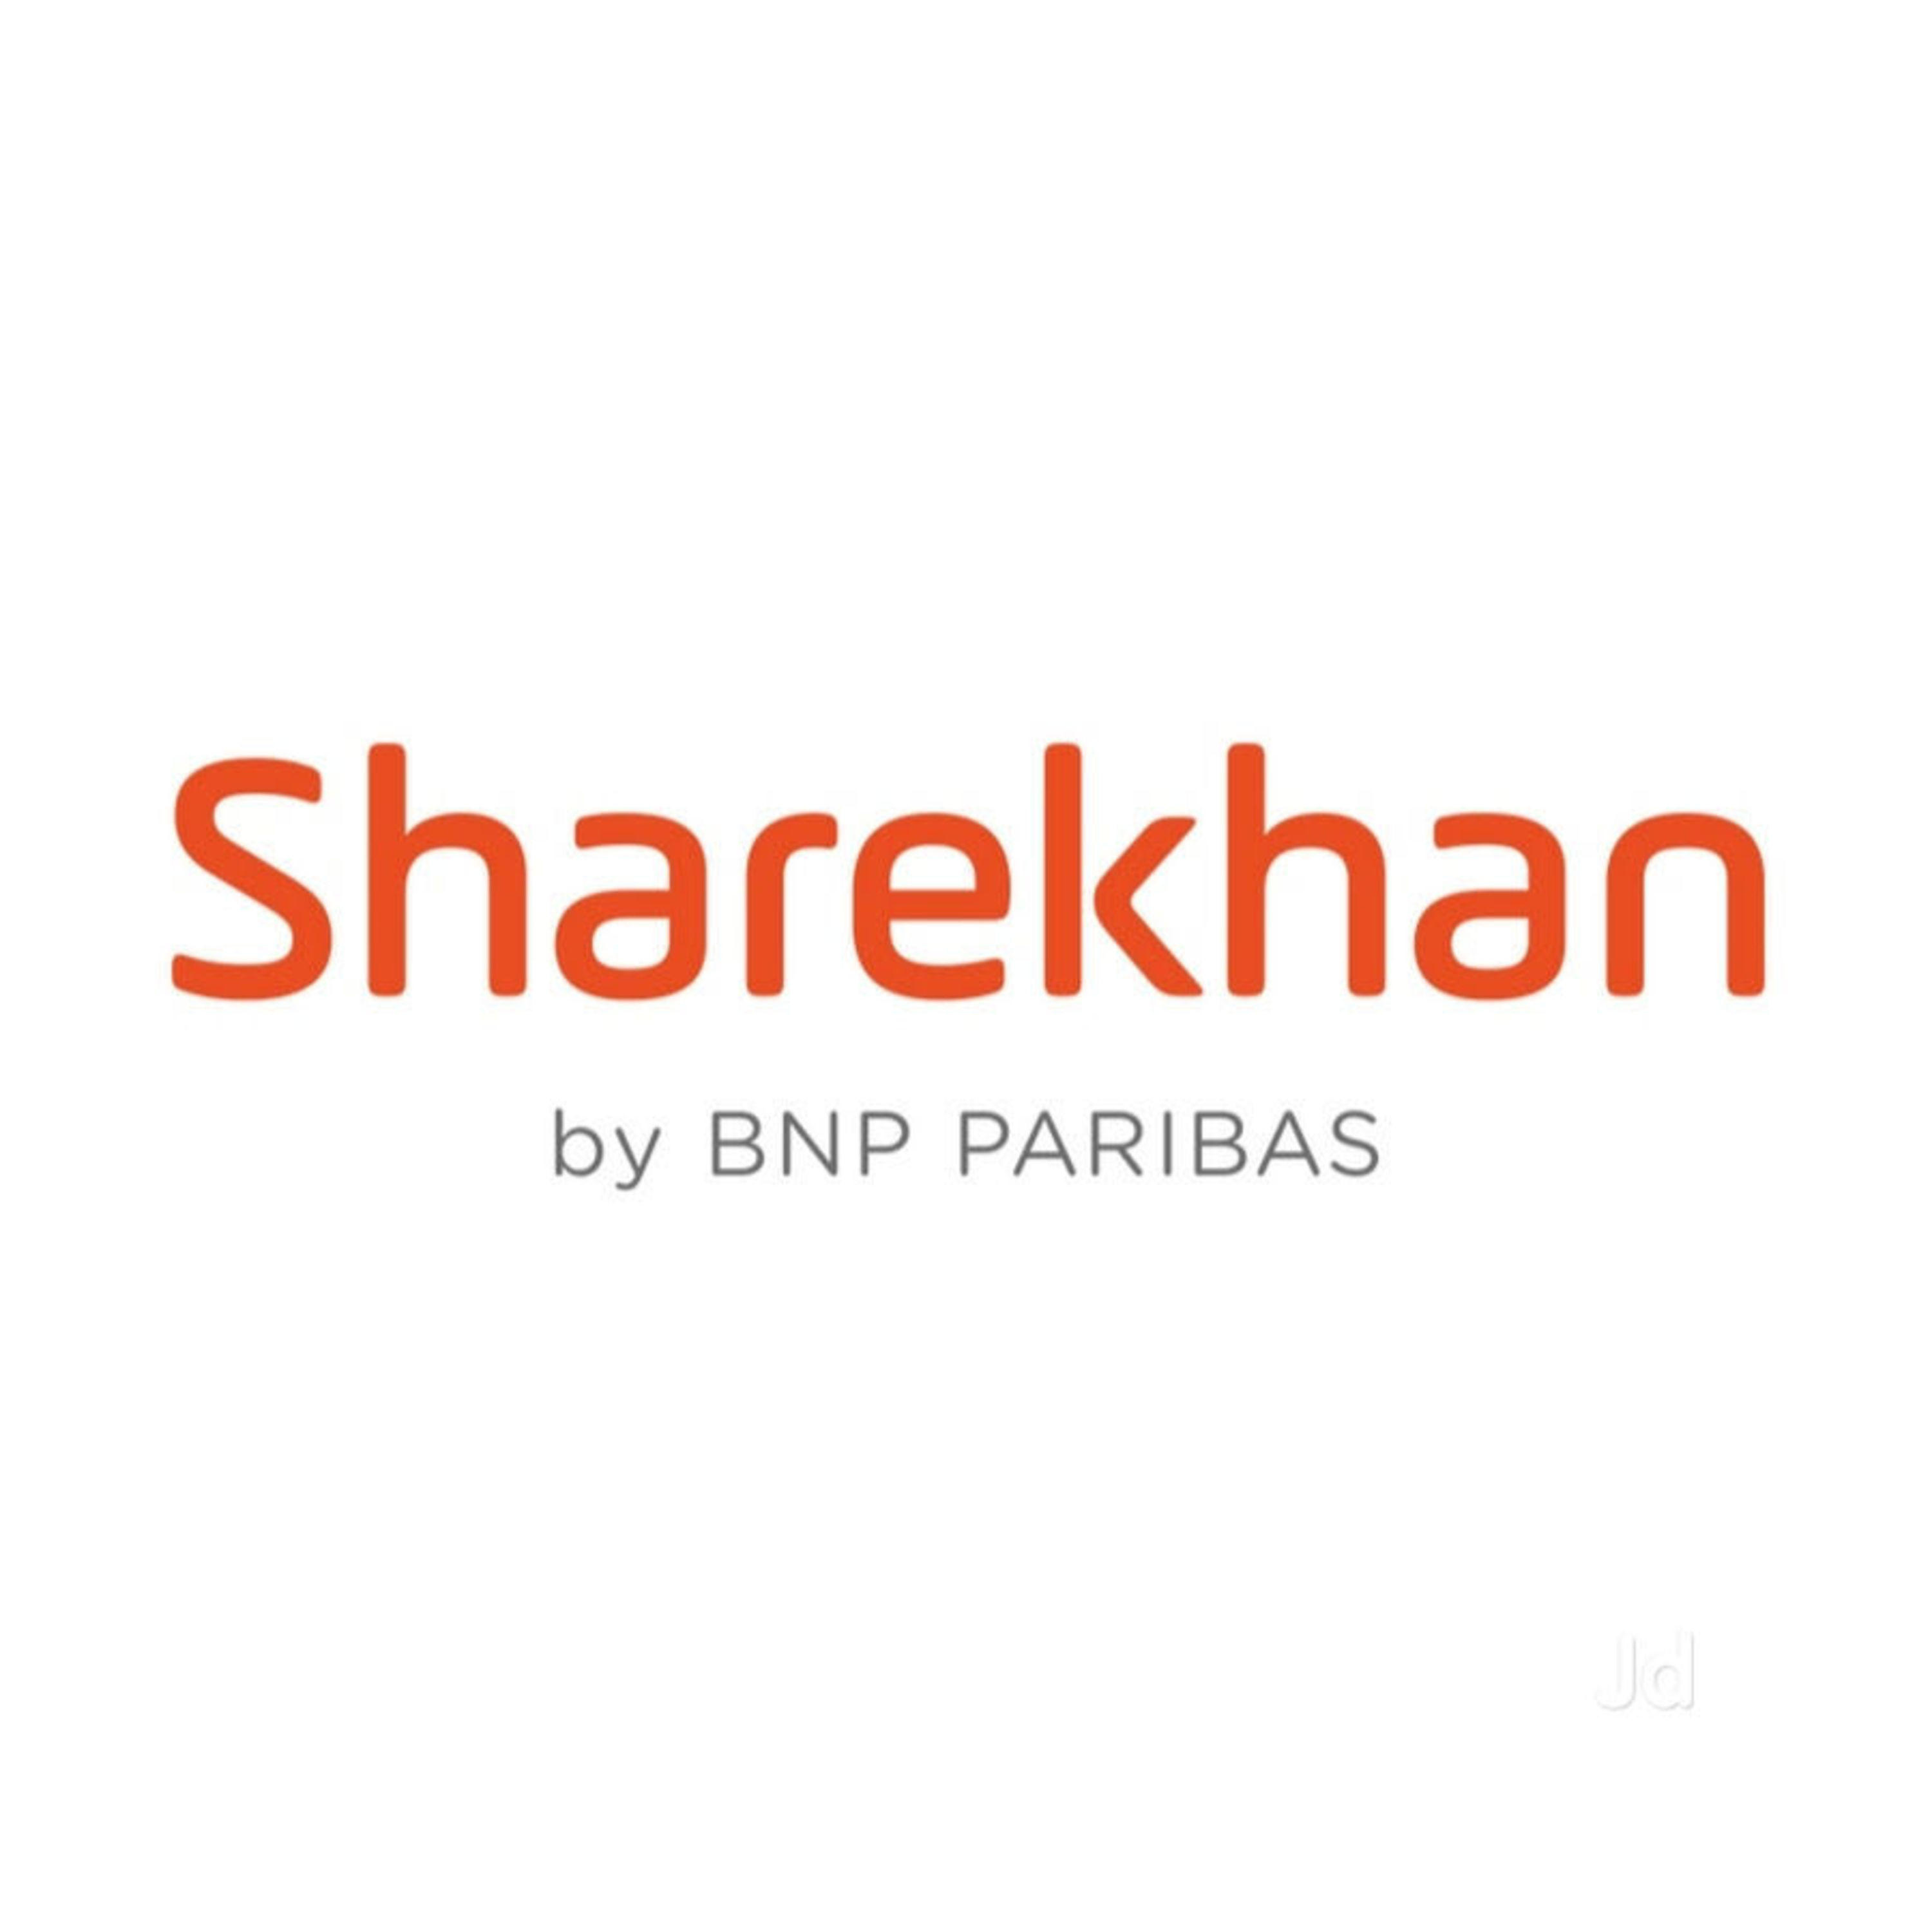 Sharekhan - Indian stock market, Investment, Financial Planning Podcast